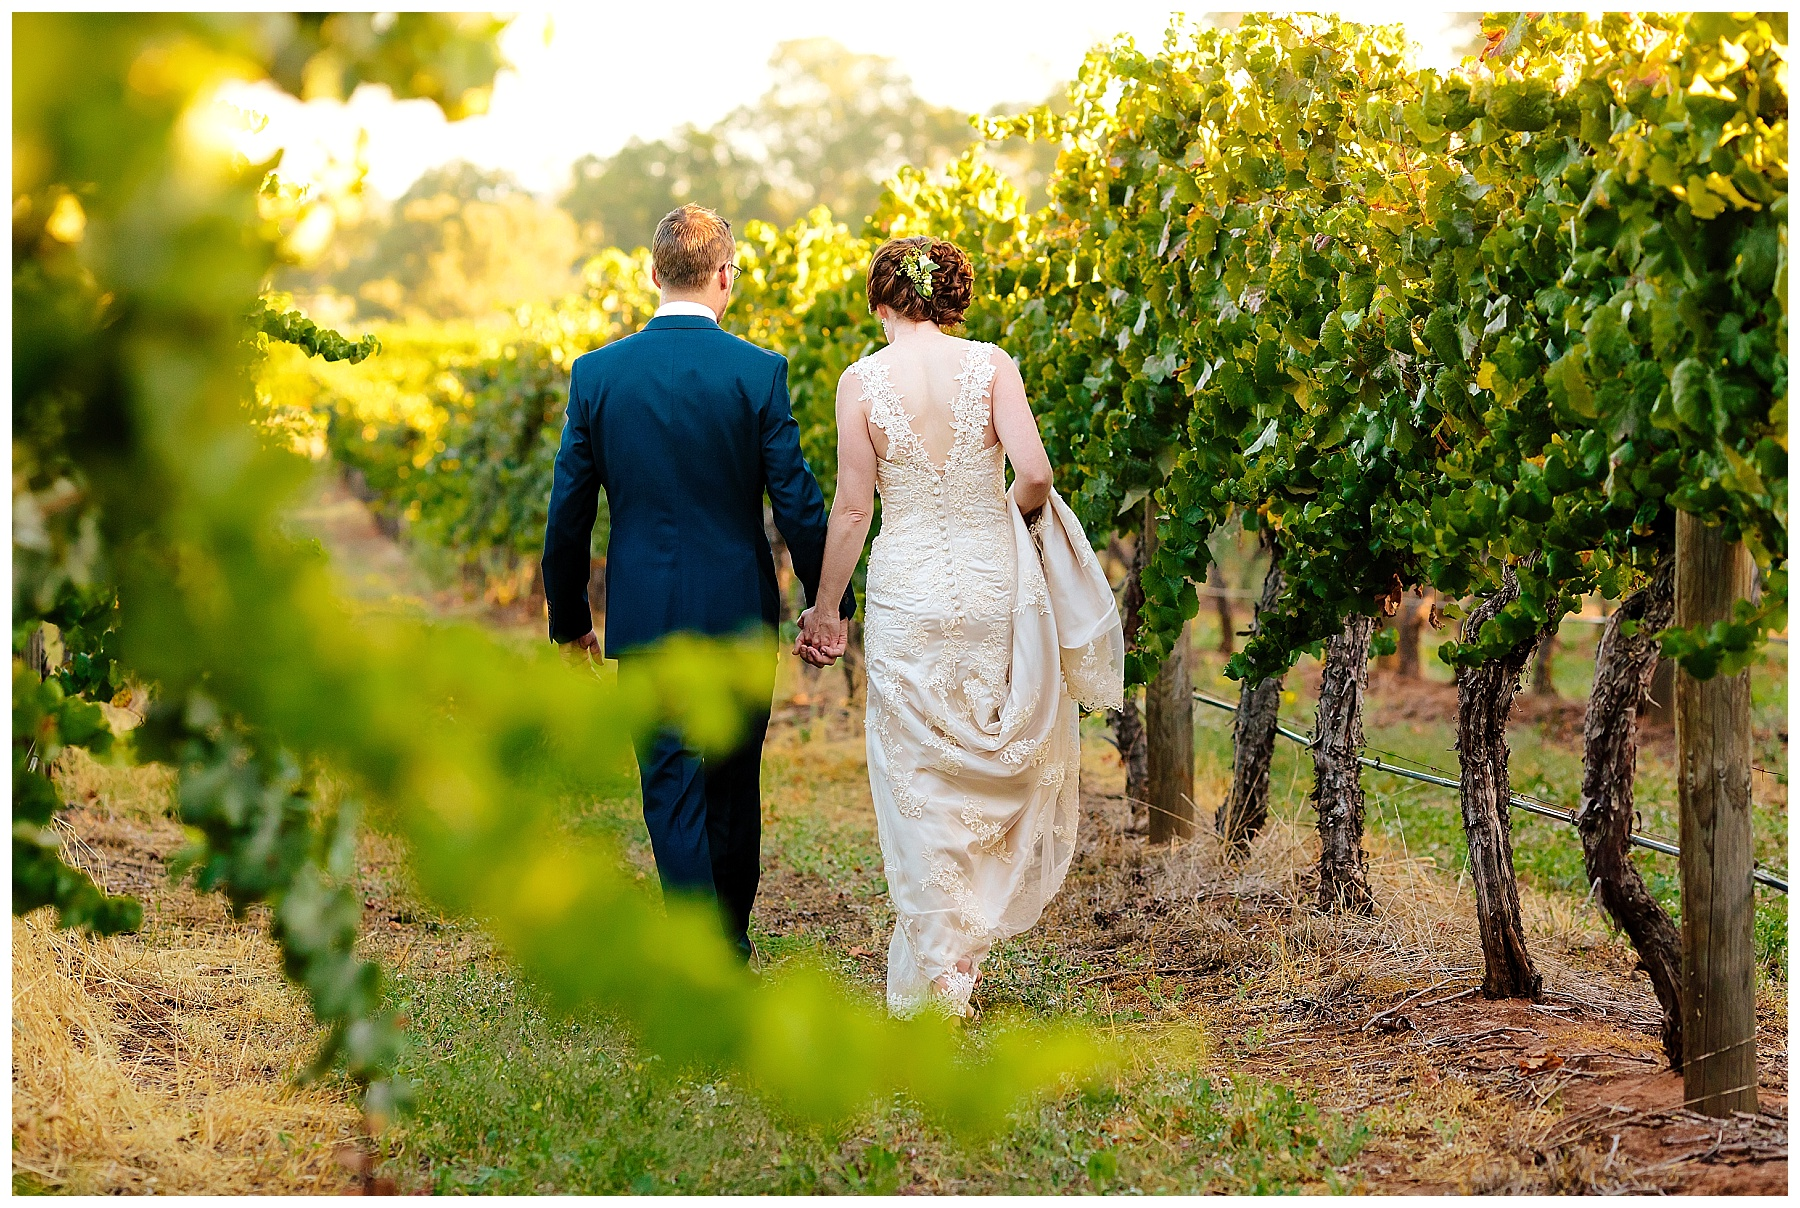 Swan Valley wedding venue